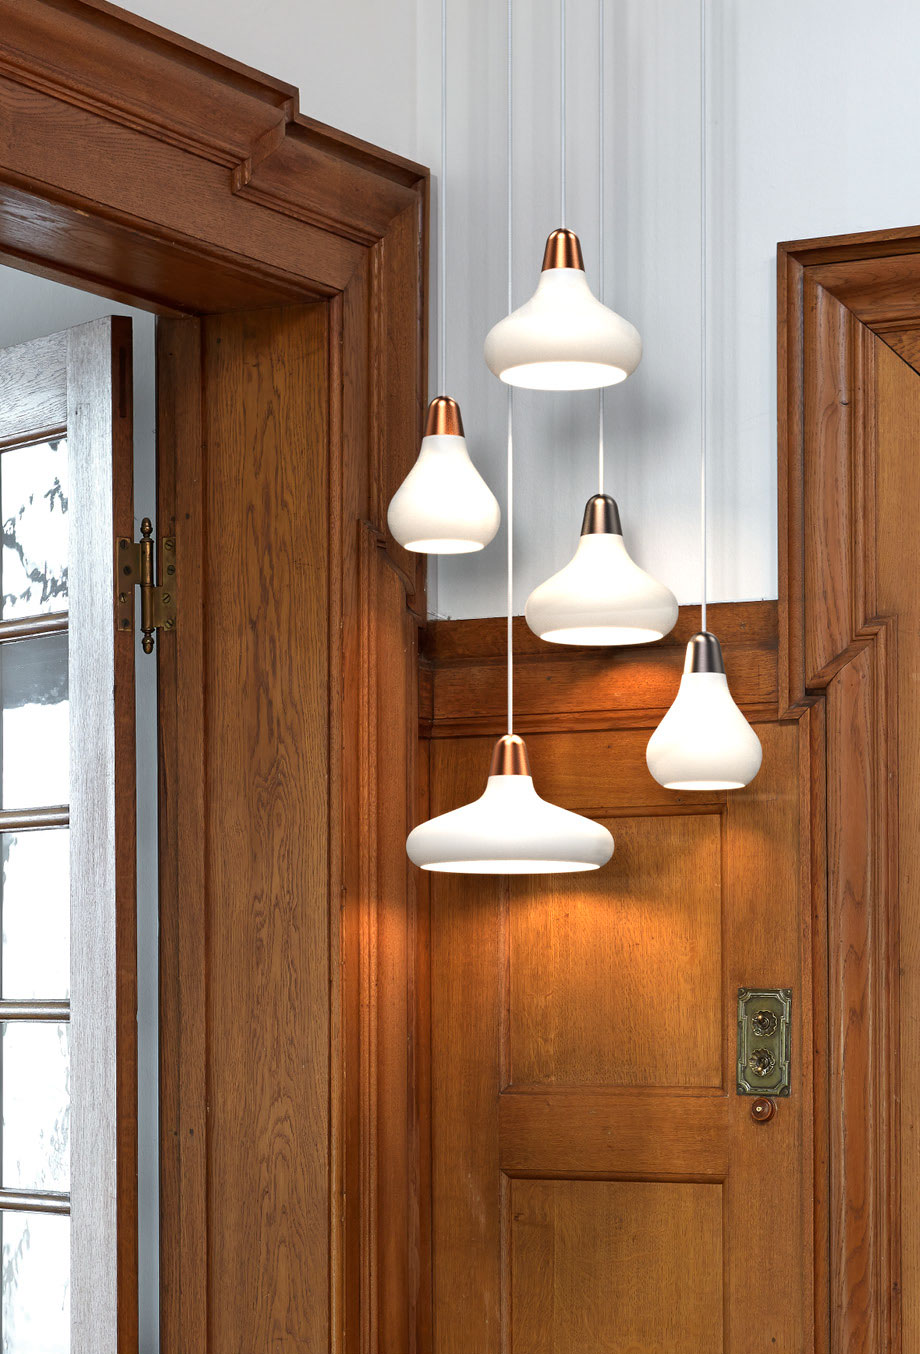 Preview Lighting Trends For 2015 Pendant Lights In Wood